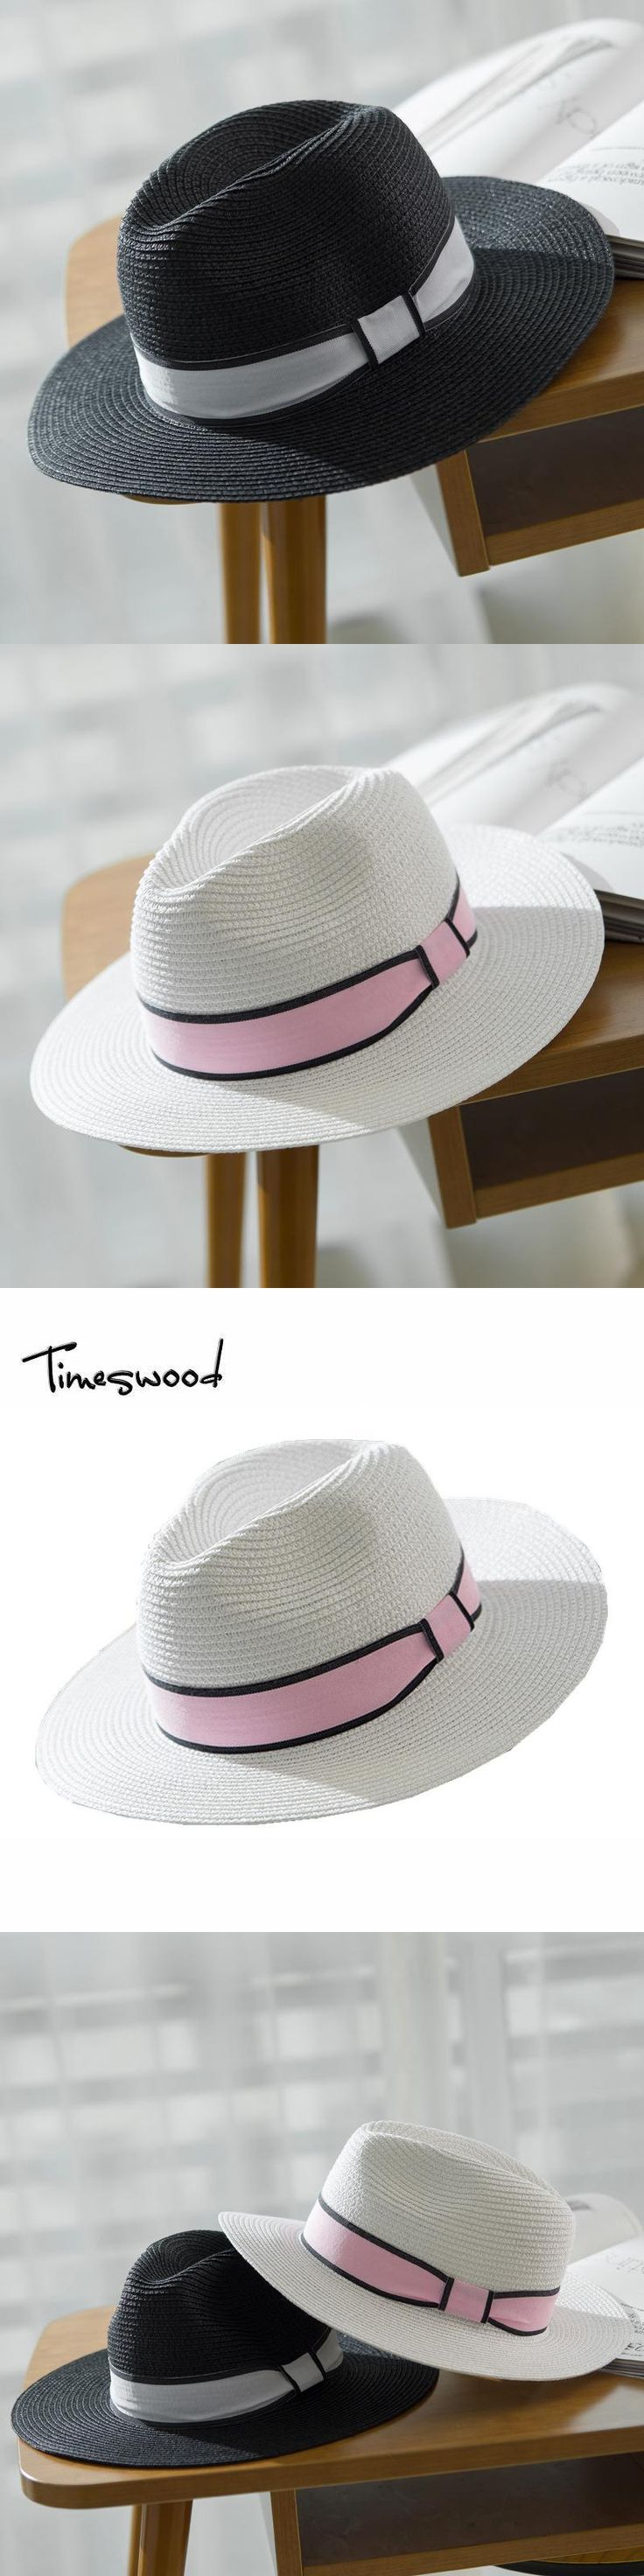 [TimesWood]Ladies Sunhat Beach Straw Sun Hats Women's Fashion 2017 Lovely Casual Adult Woman Summer Caps Strawhat Gorras Travel